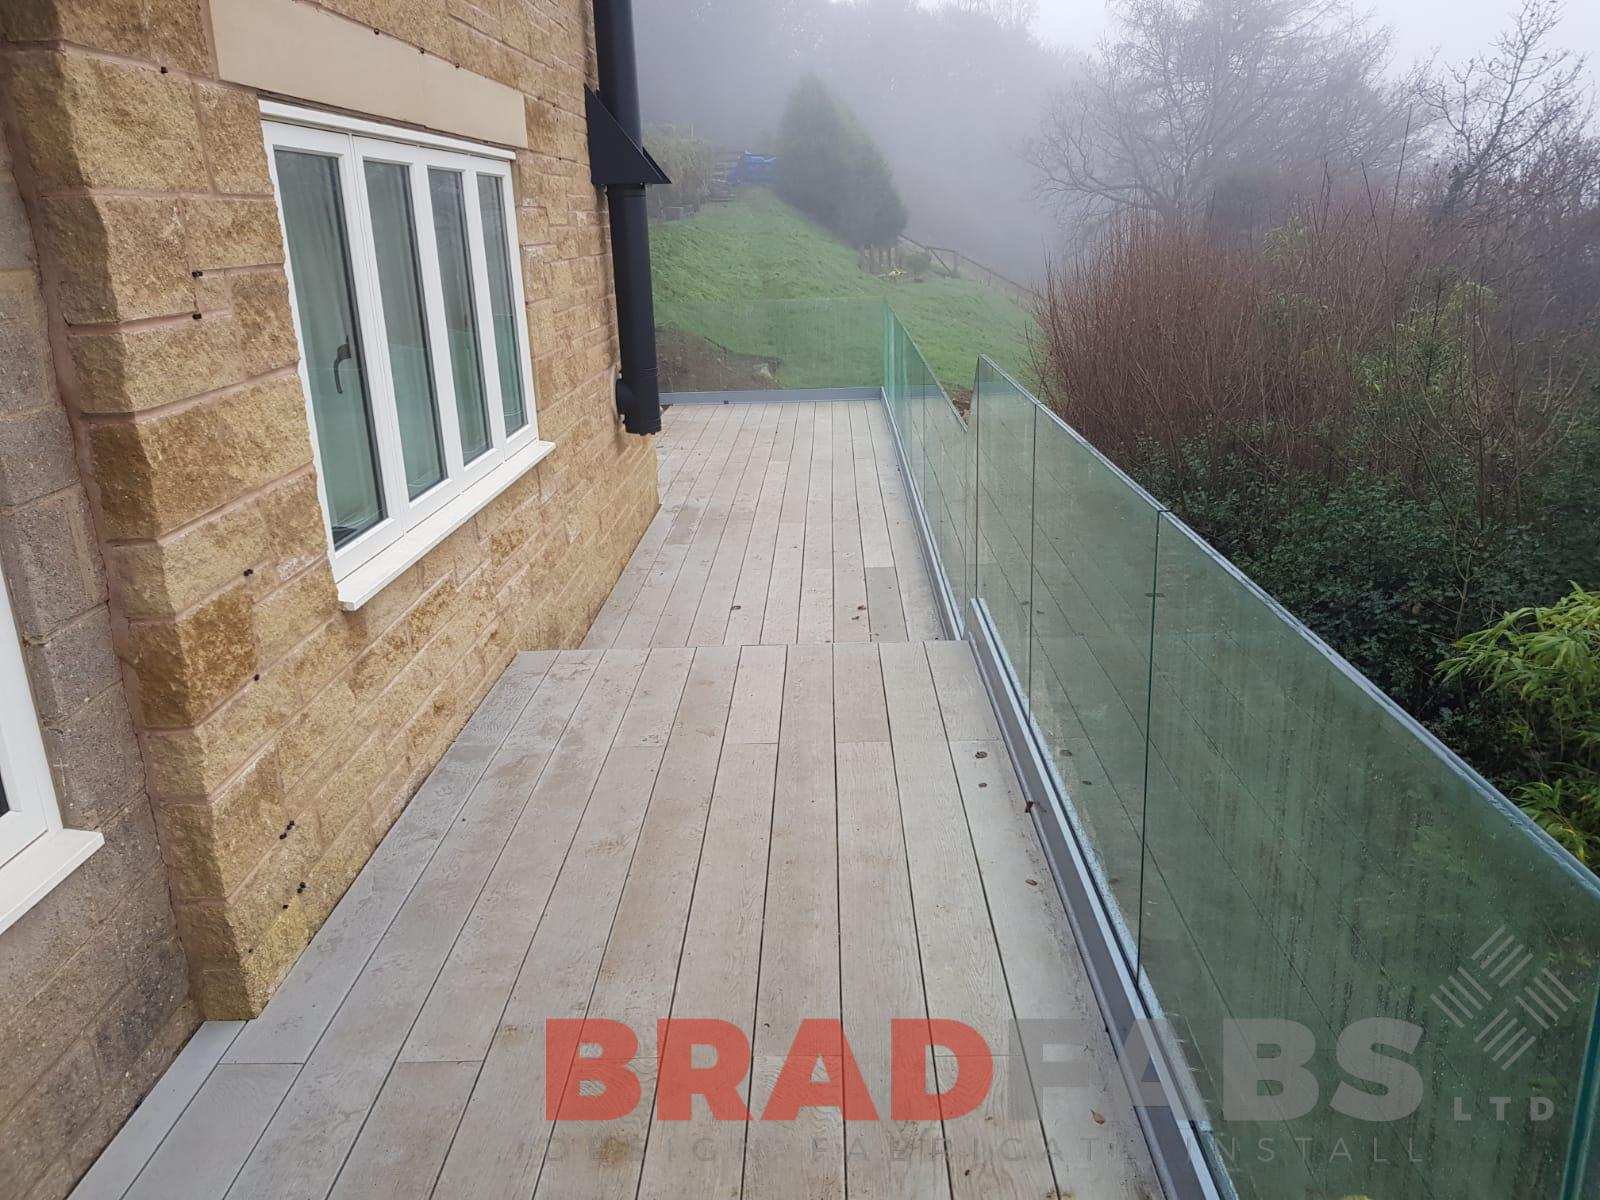 Balcony installed by Bradfabs experts in manufacturing Balconies in the UK